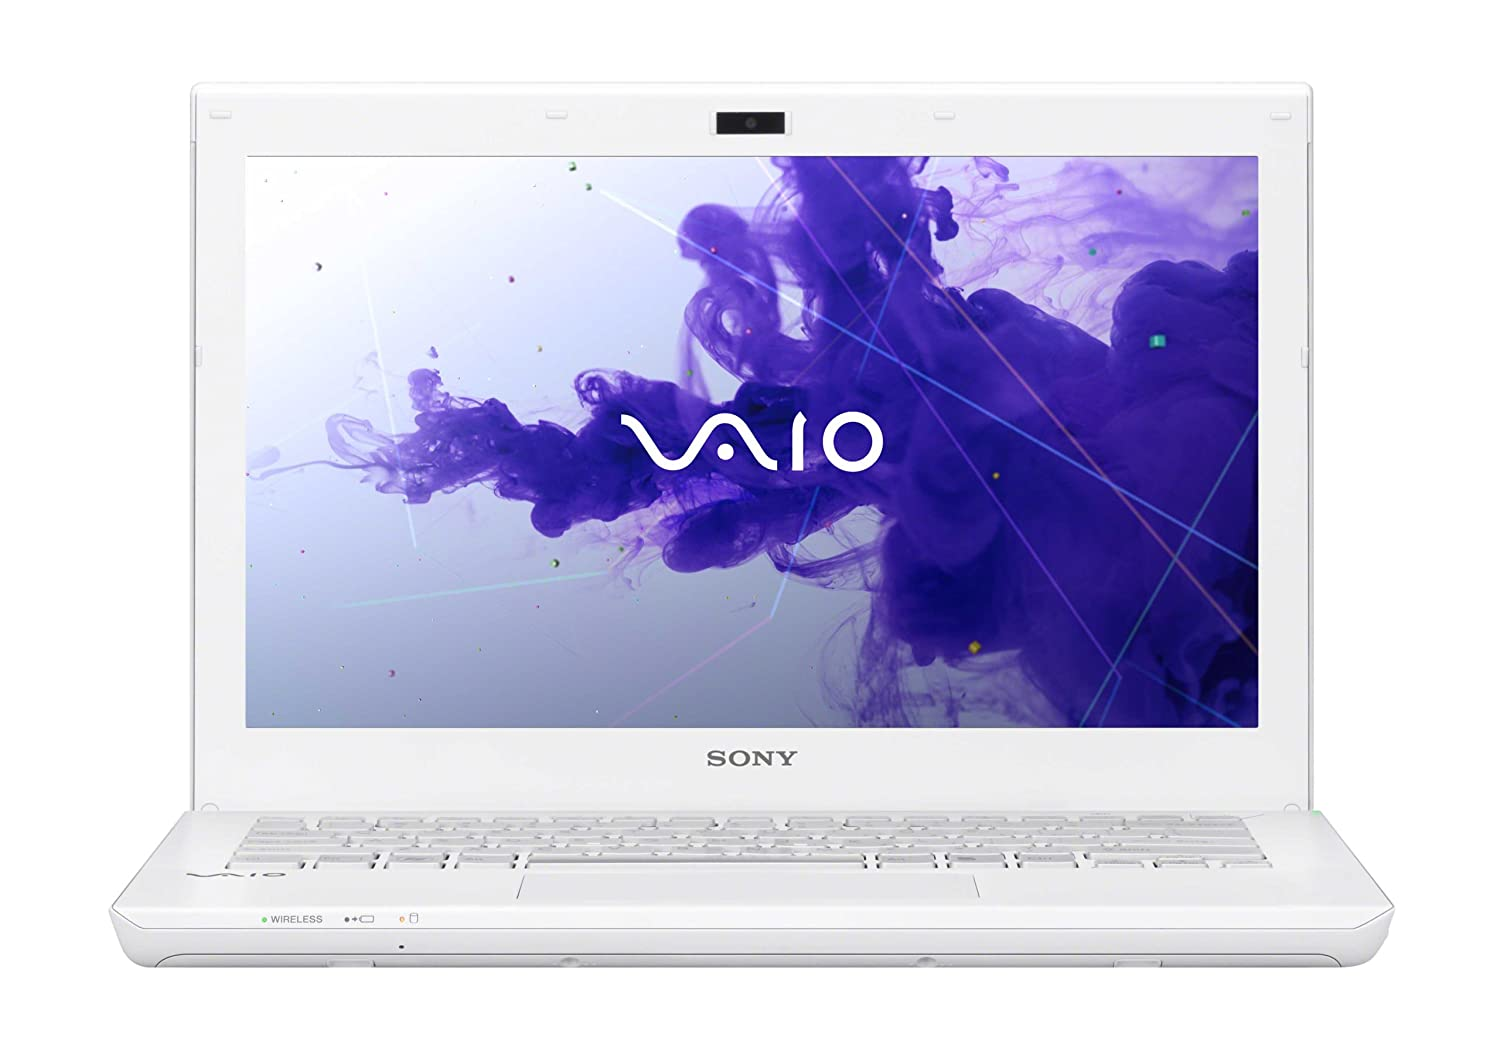 SONY VAIO VPCEG14FX SYNAPTICS TOUCHPAD TREIBER WINDOWS 8